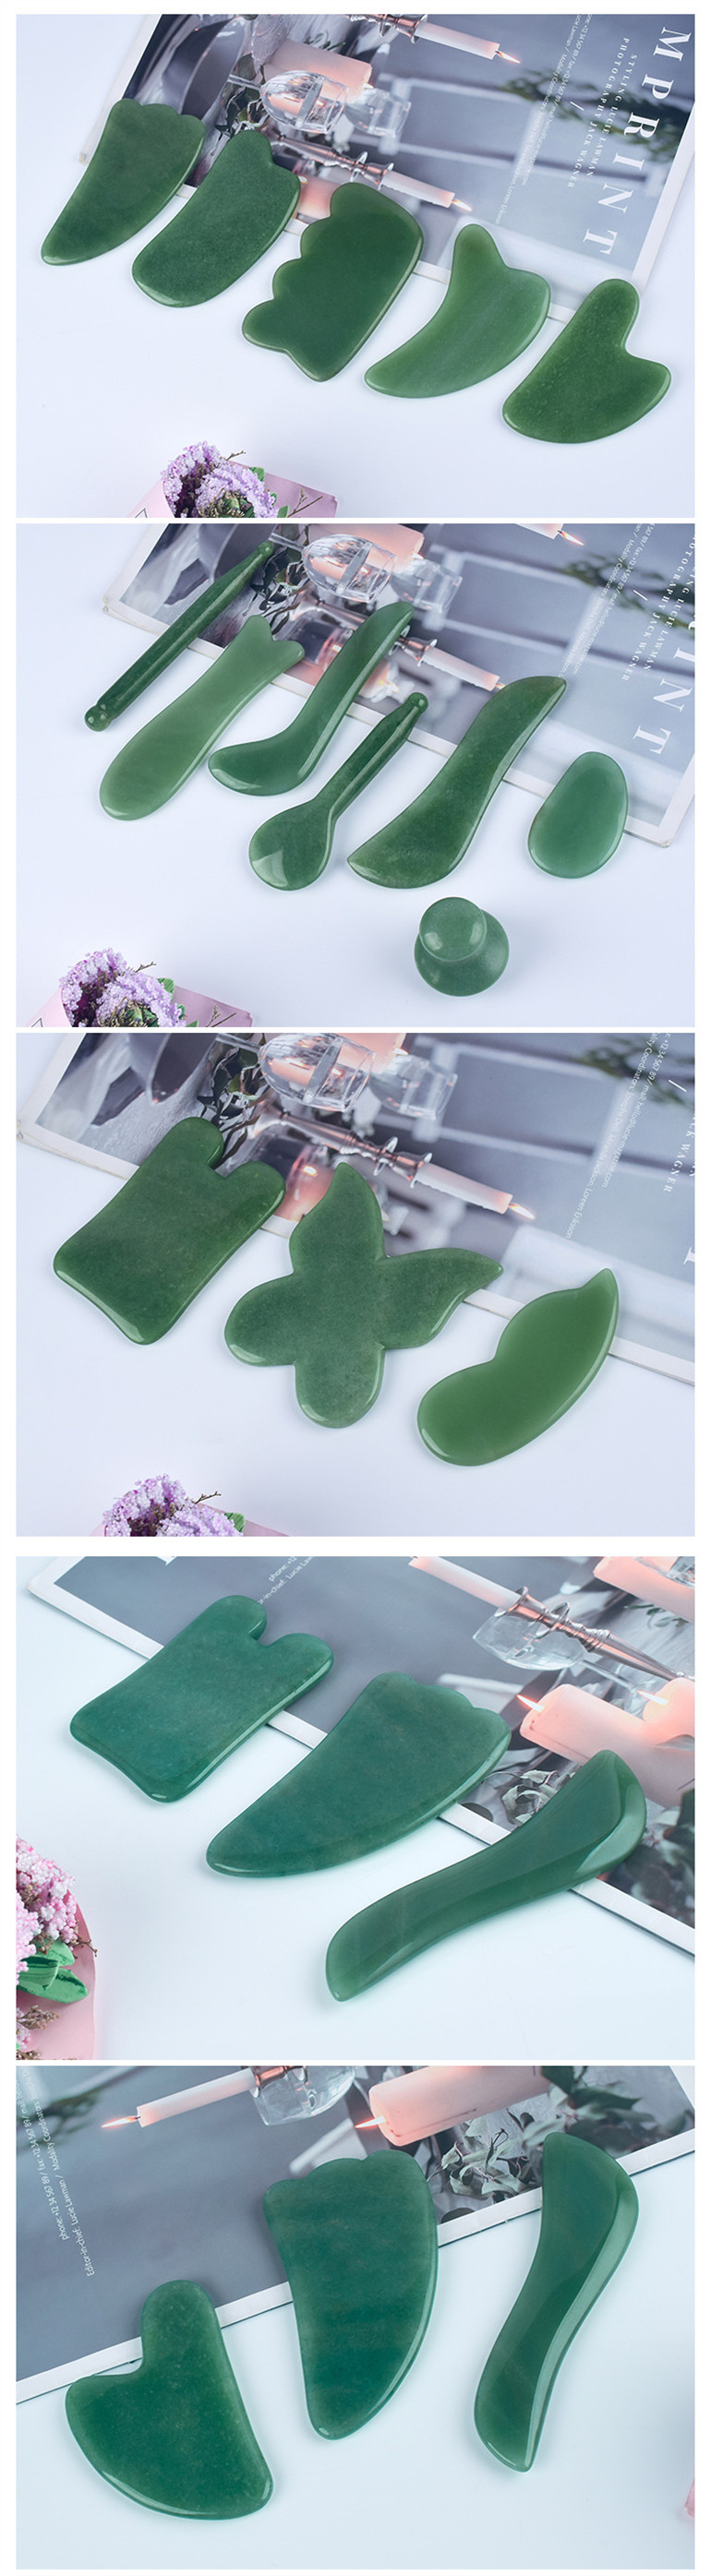 Factory Wholesale Multiple Designs Natural Pink Crystal Jade Scraping Board for Full Body Beauty Massage